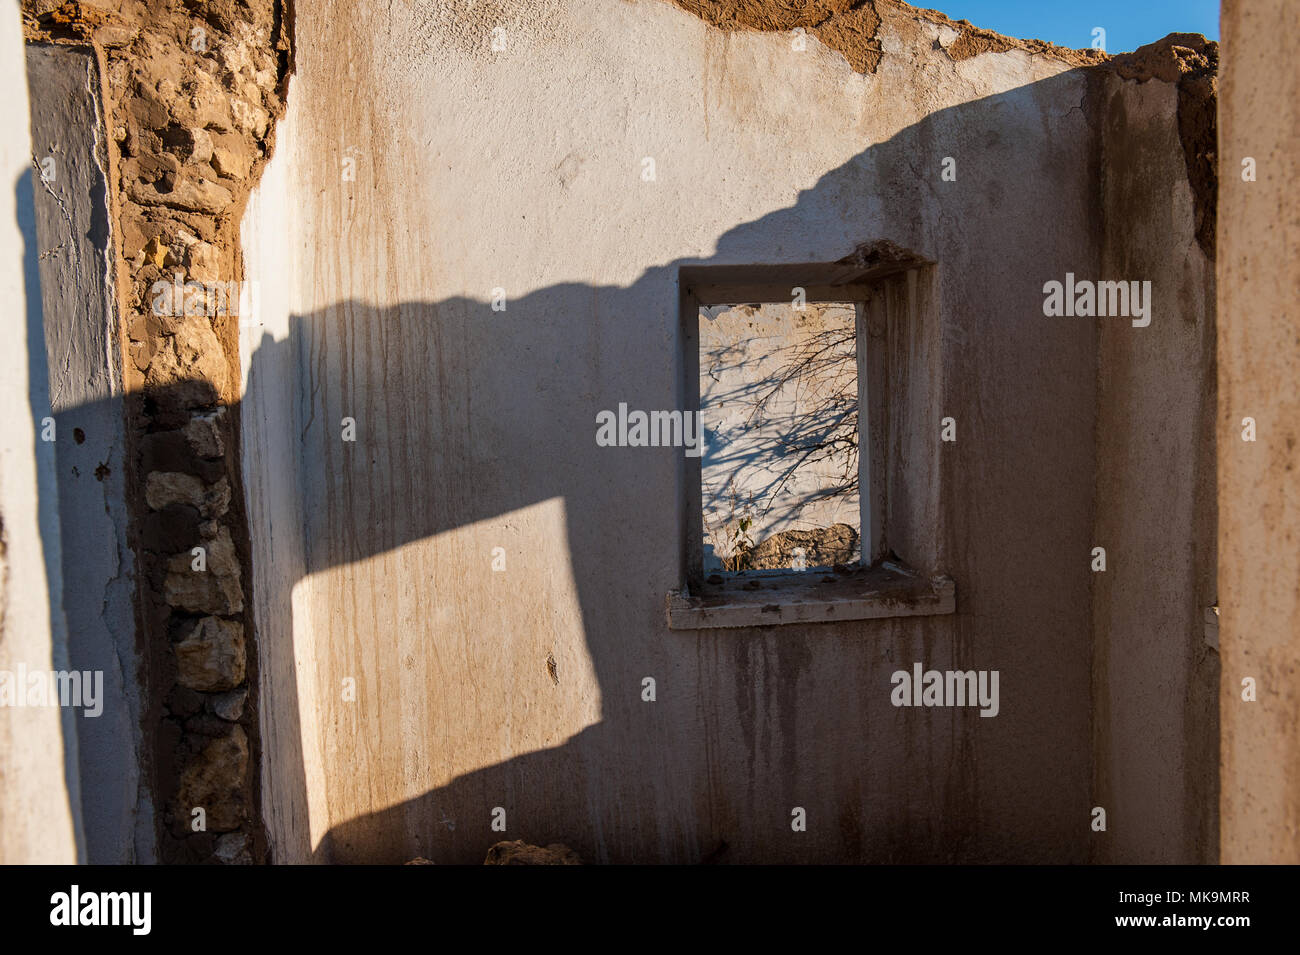 DESTROYED FORGED OLD HOUSE IN THE RURAL LOCATION. REMAINS OF WALLS AND WINDOWS. - Stock Image